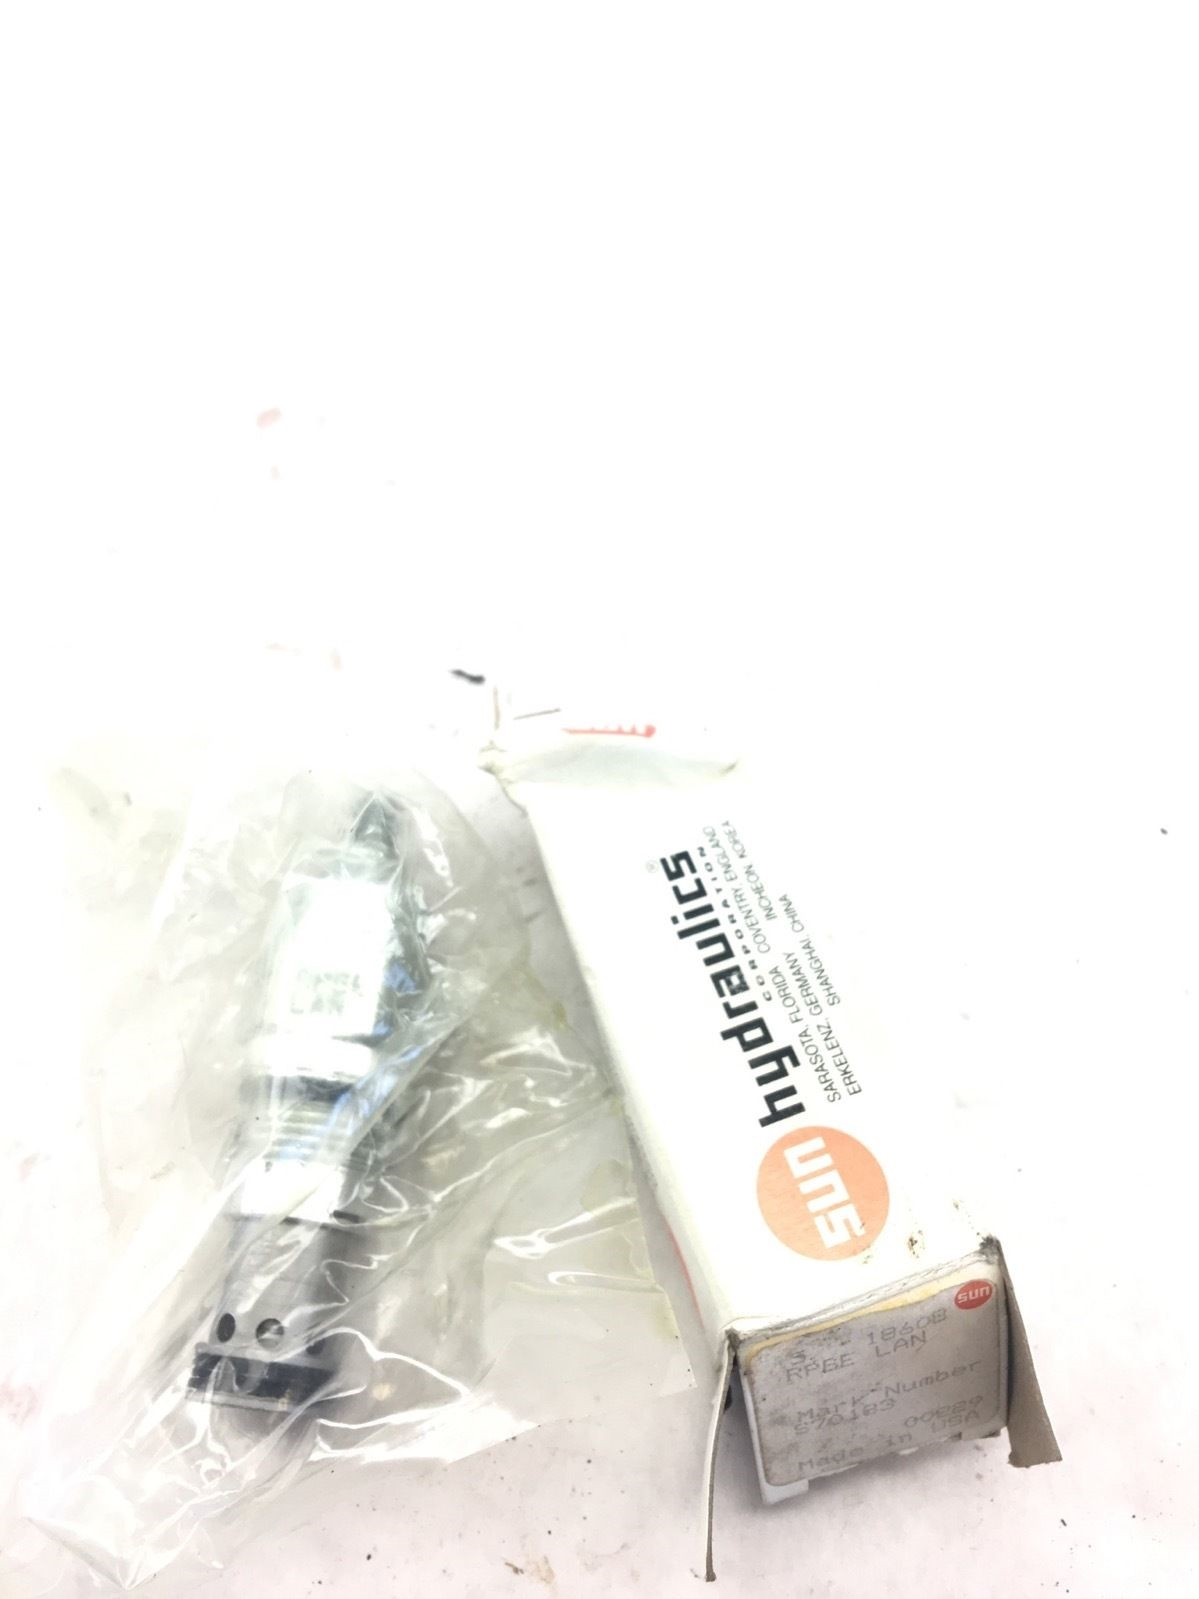 NEW IN BOX SUN HYDRAULICS RPGE-LAN PISTON RELIEF VALVE, FAST SHIPPING! (A84) 1